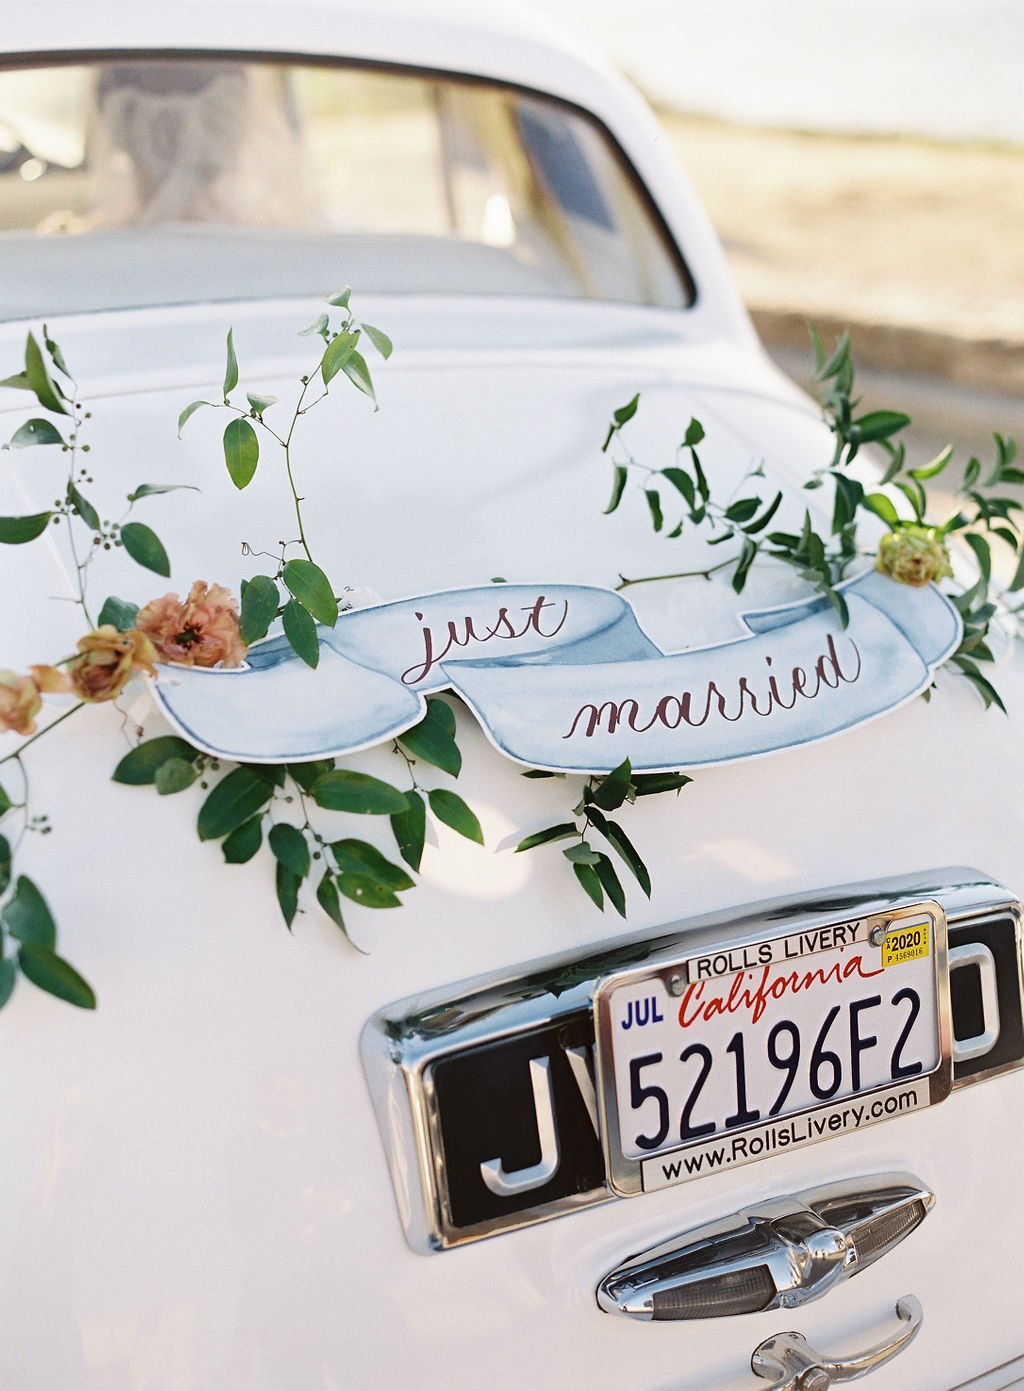 white vintage wedding car with just married sign